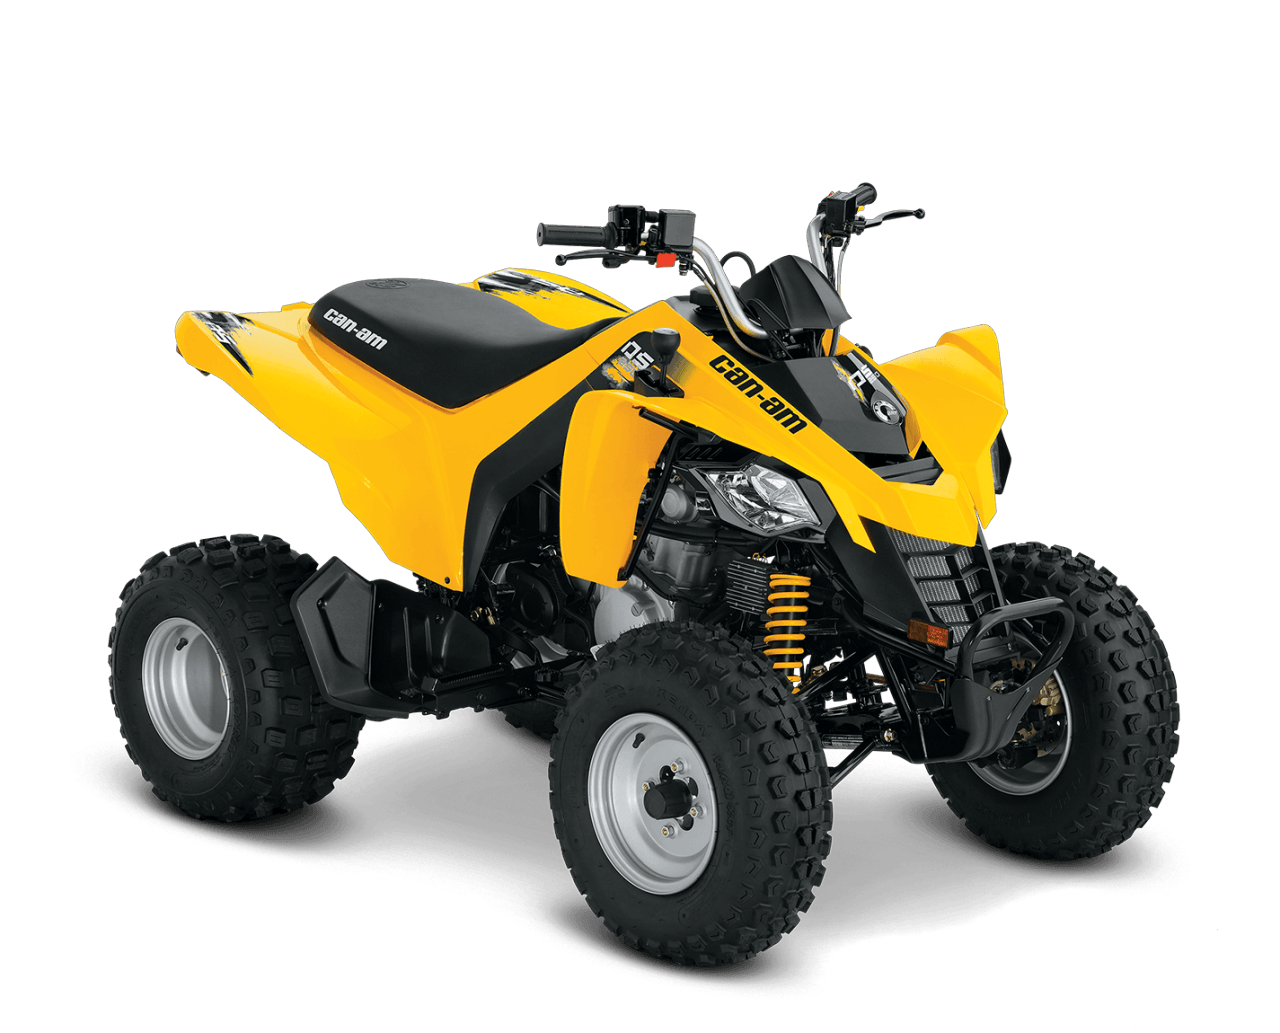 2016 Can-Am DS 250 in Roscoe, Illinois